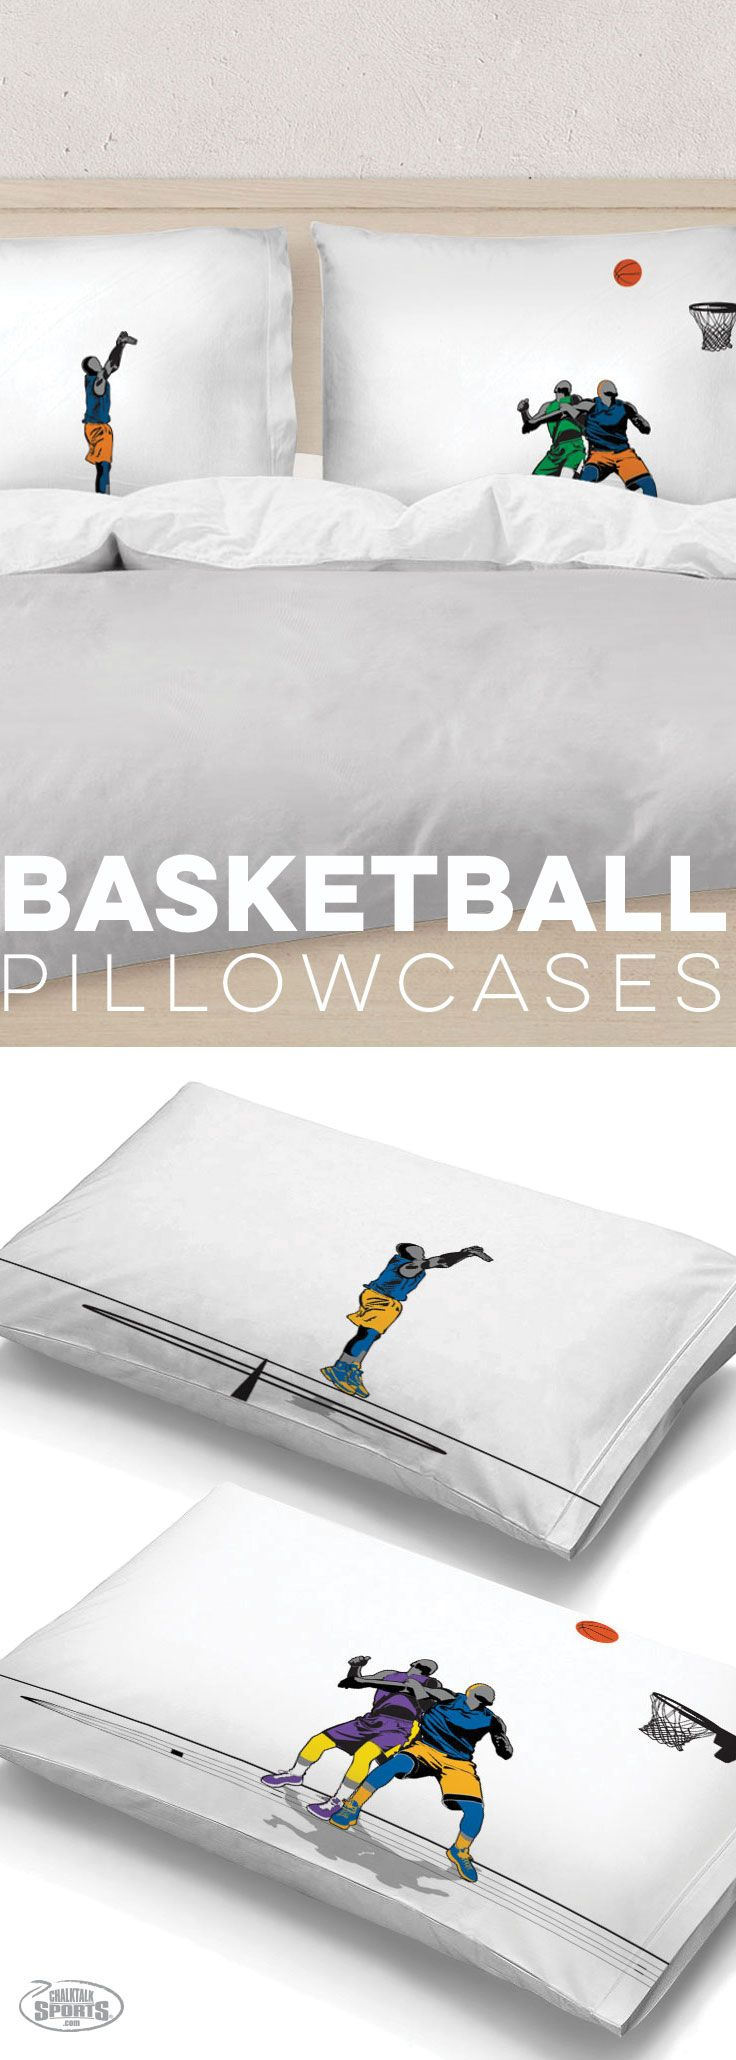 These basketball pillow cases are sure to score come point to whoever is given them. Super soft and comfortable, there is a scene of a game in progress. You wont regret getting these.